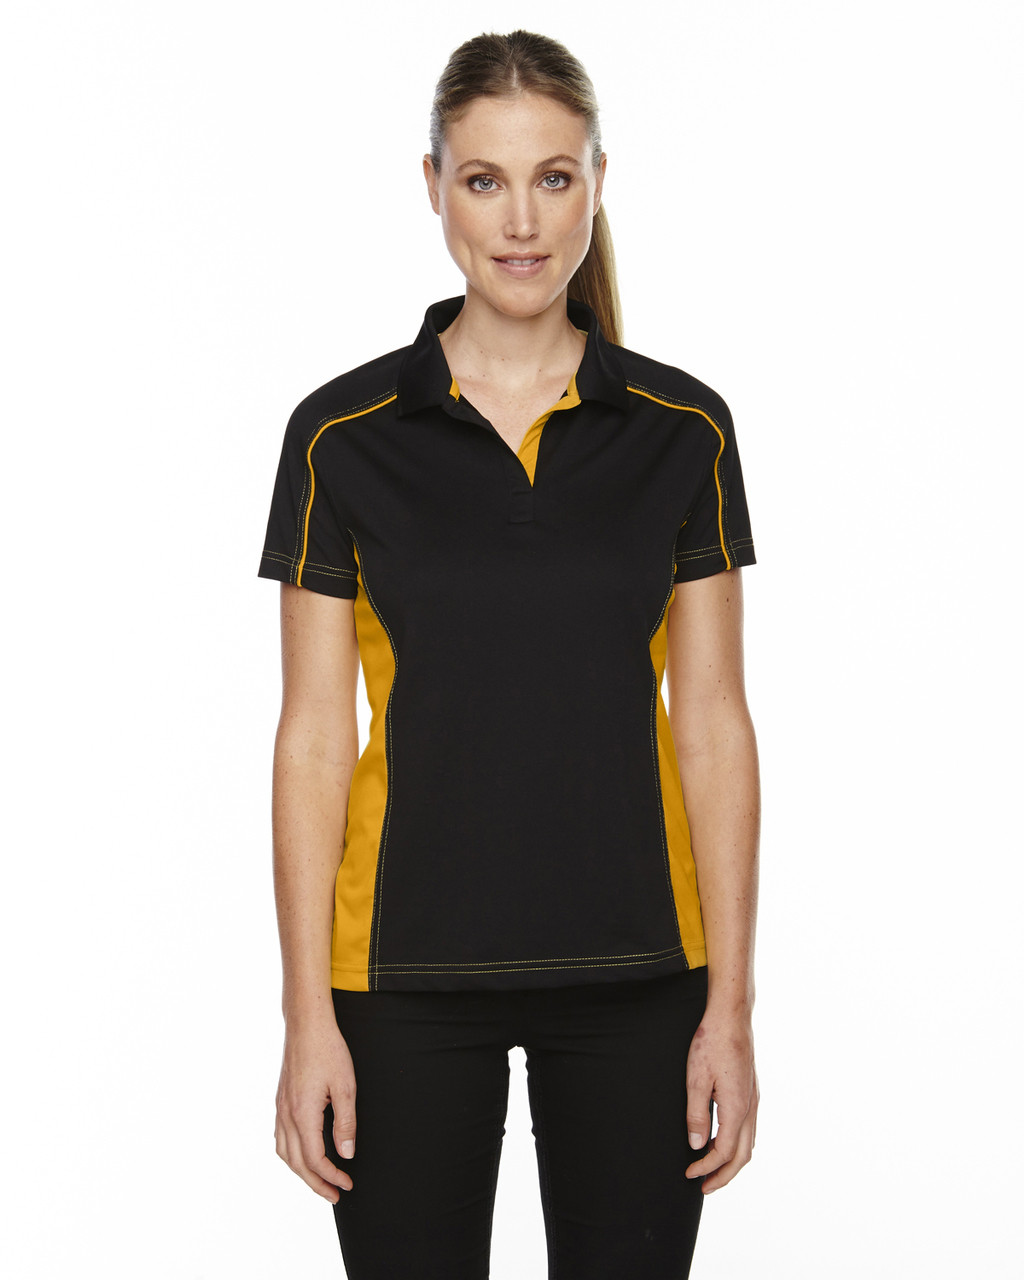 Black/Campus Gold - 5113 Ash City - Extreme Eperformance Ladies' Fuse Plus Colourblock Polo Shirt | Blankclothing.ca